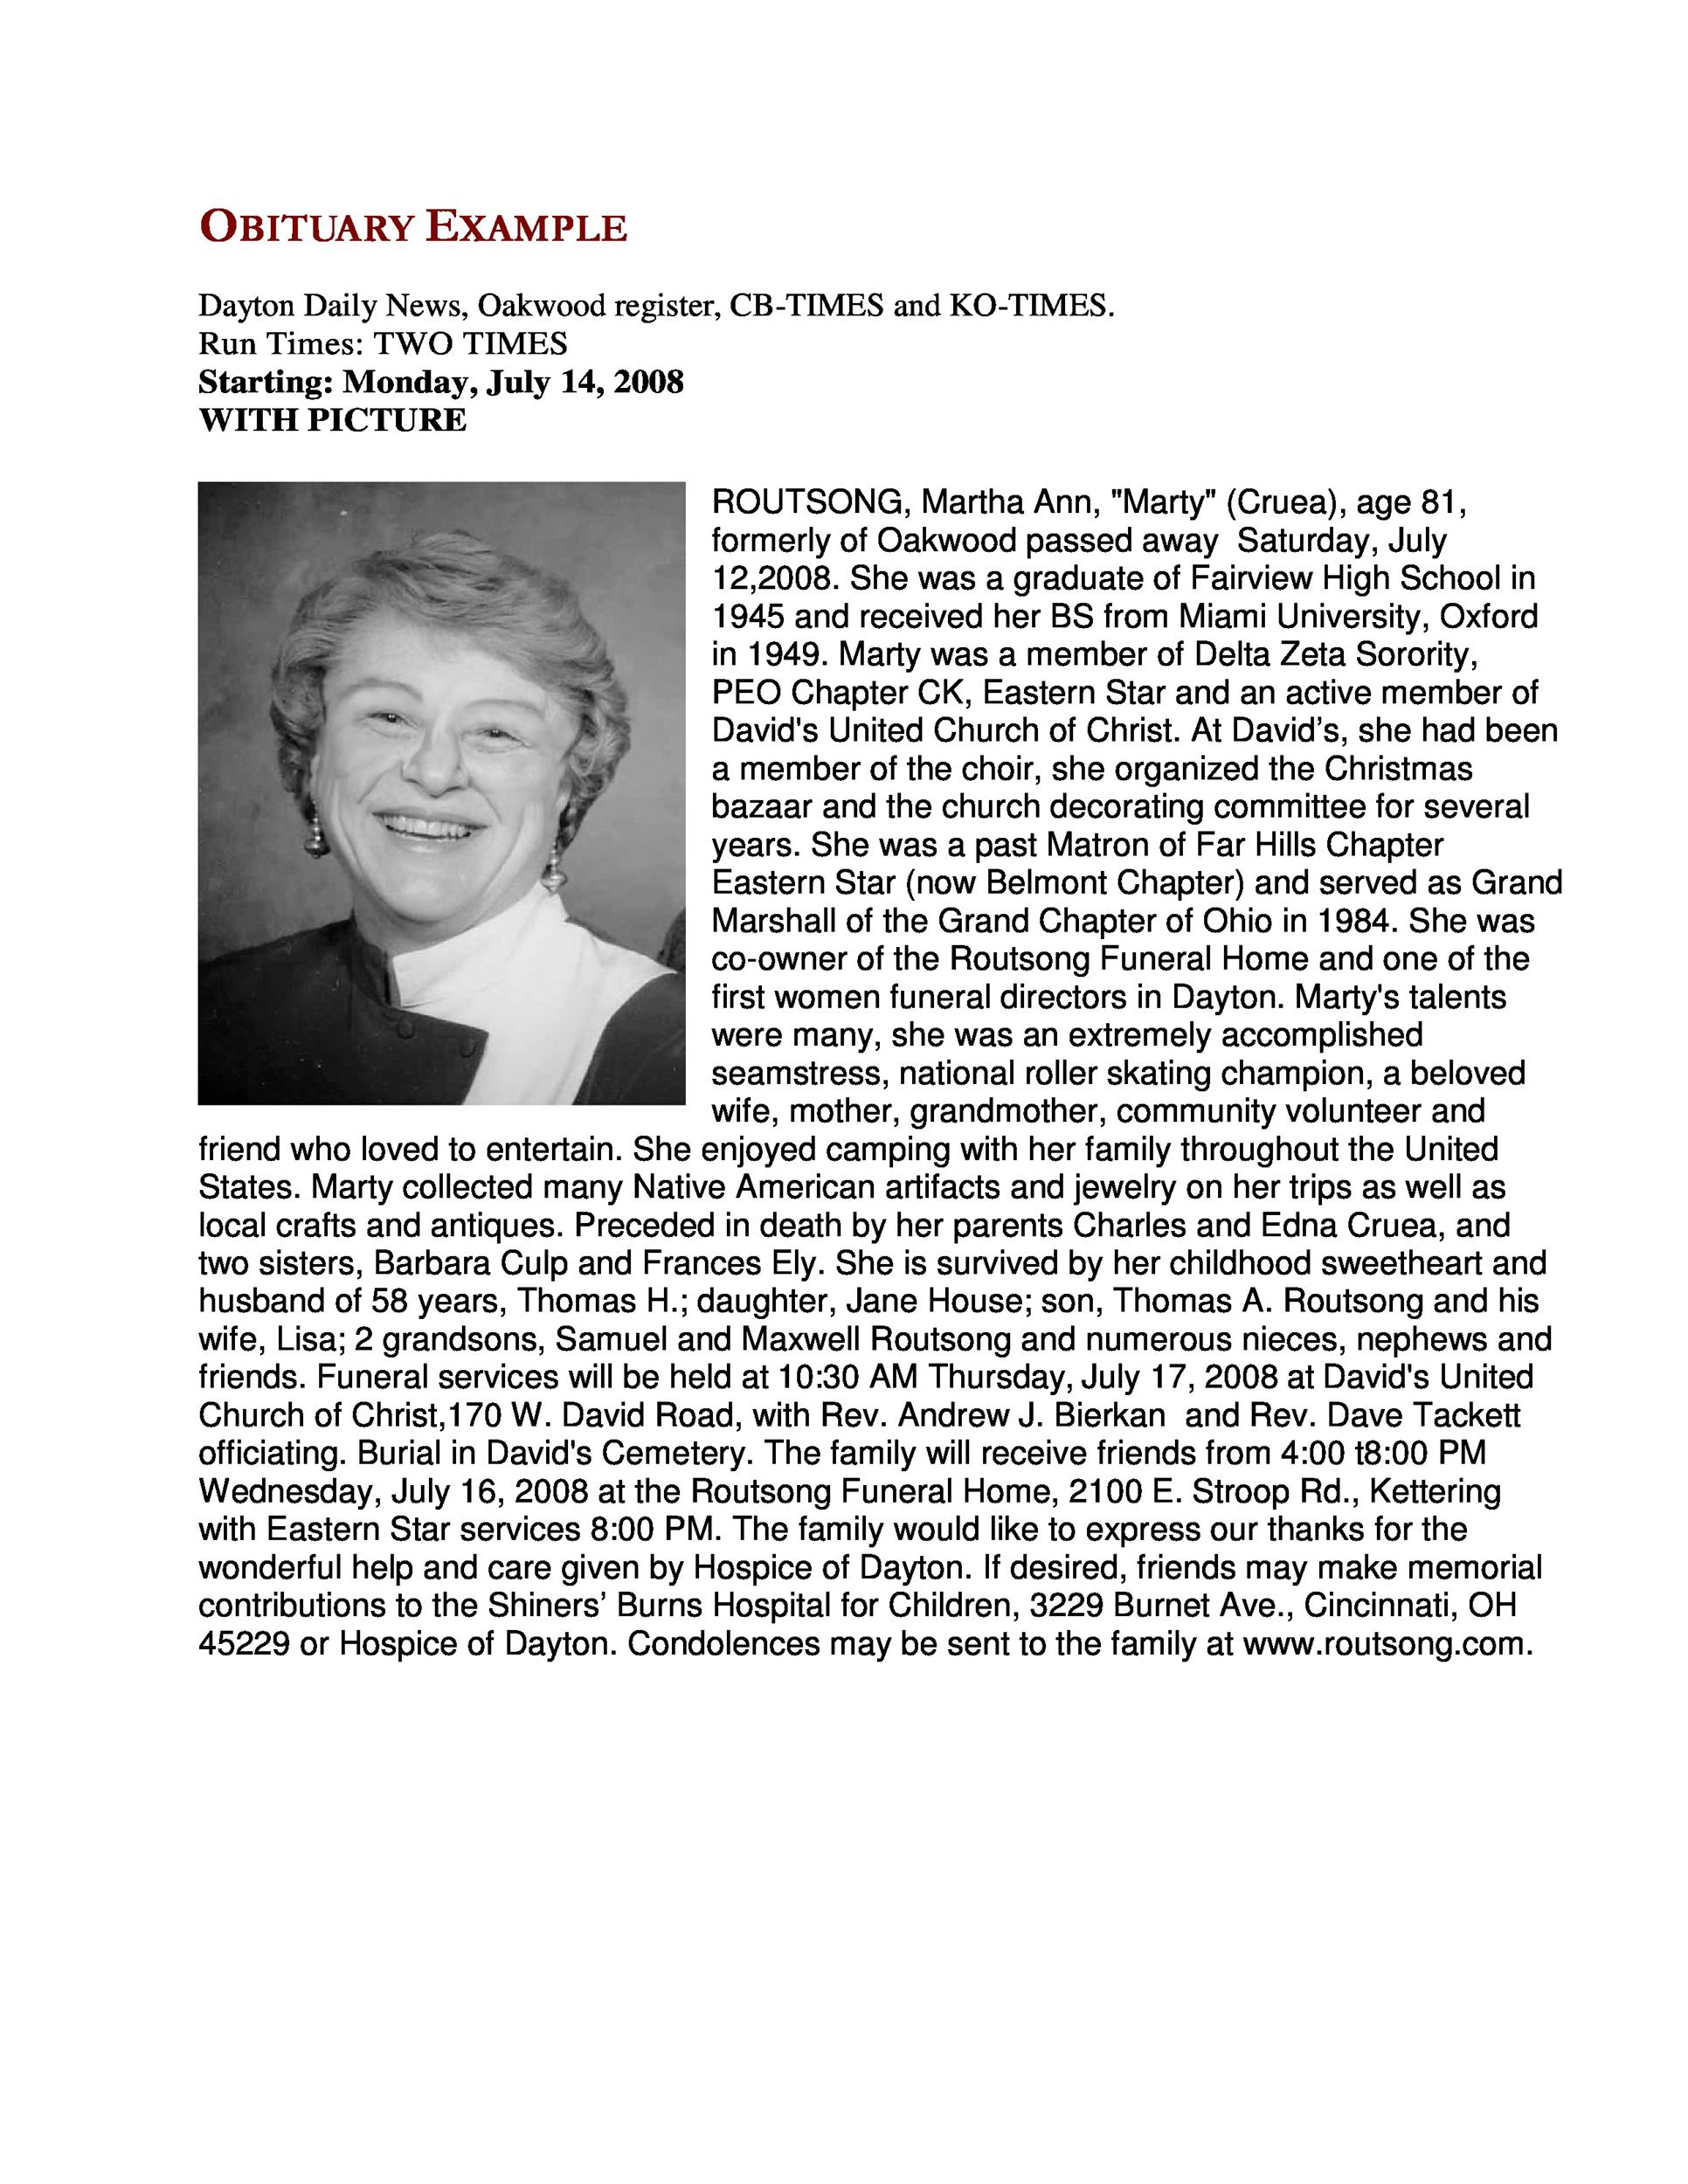 25 Obituary Templates And Samples Templatelab